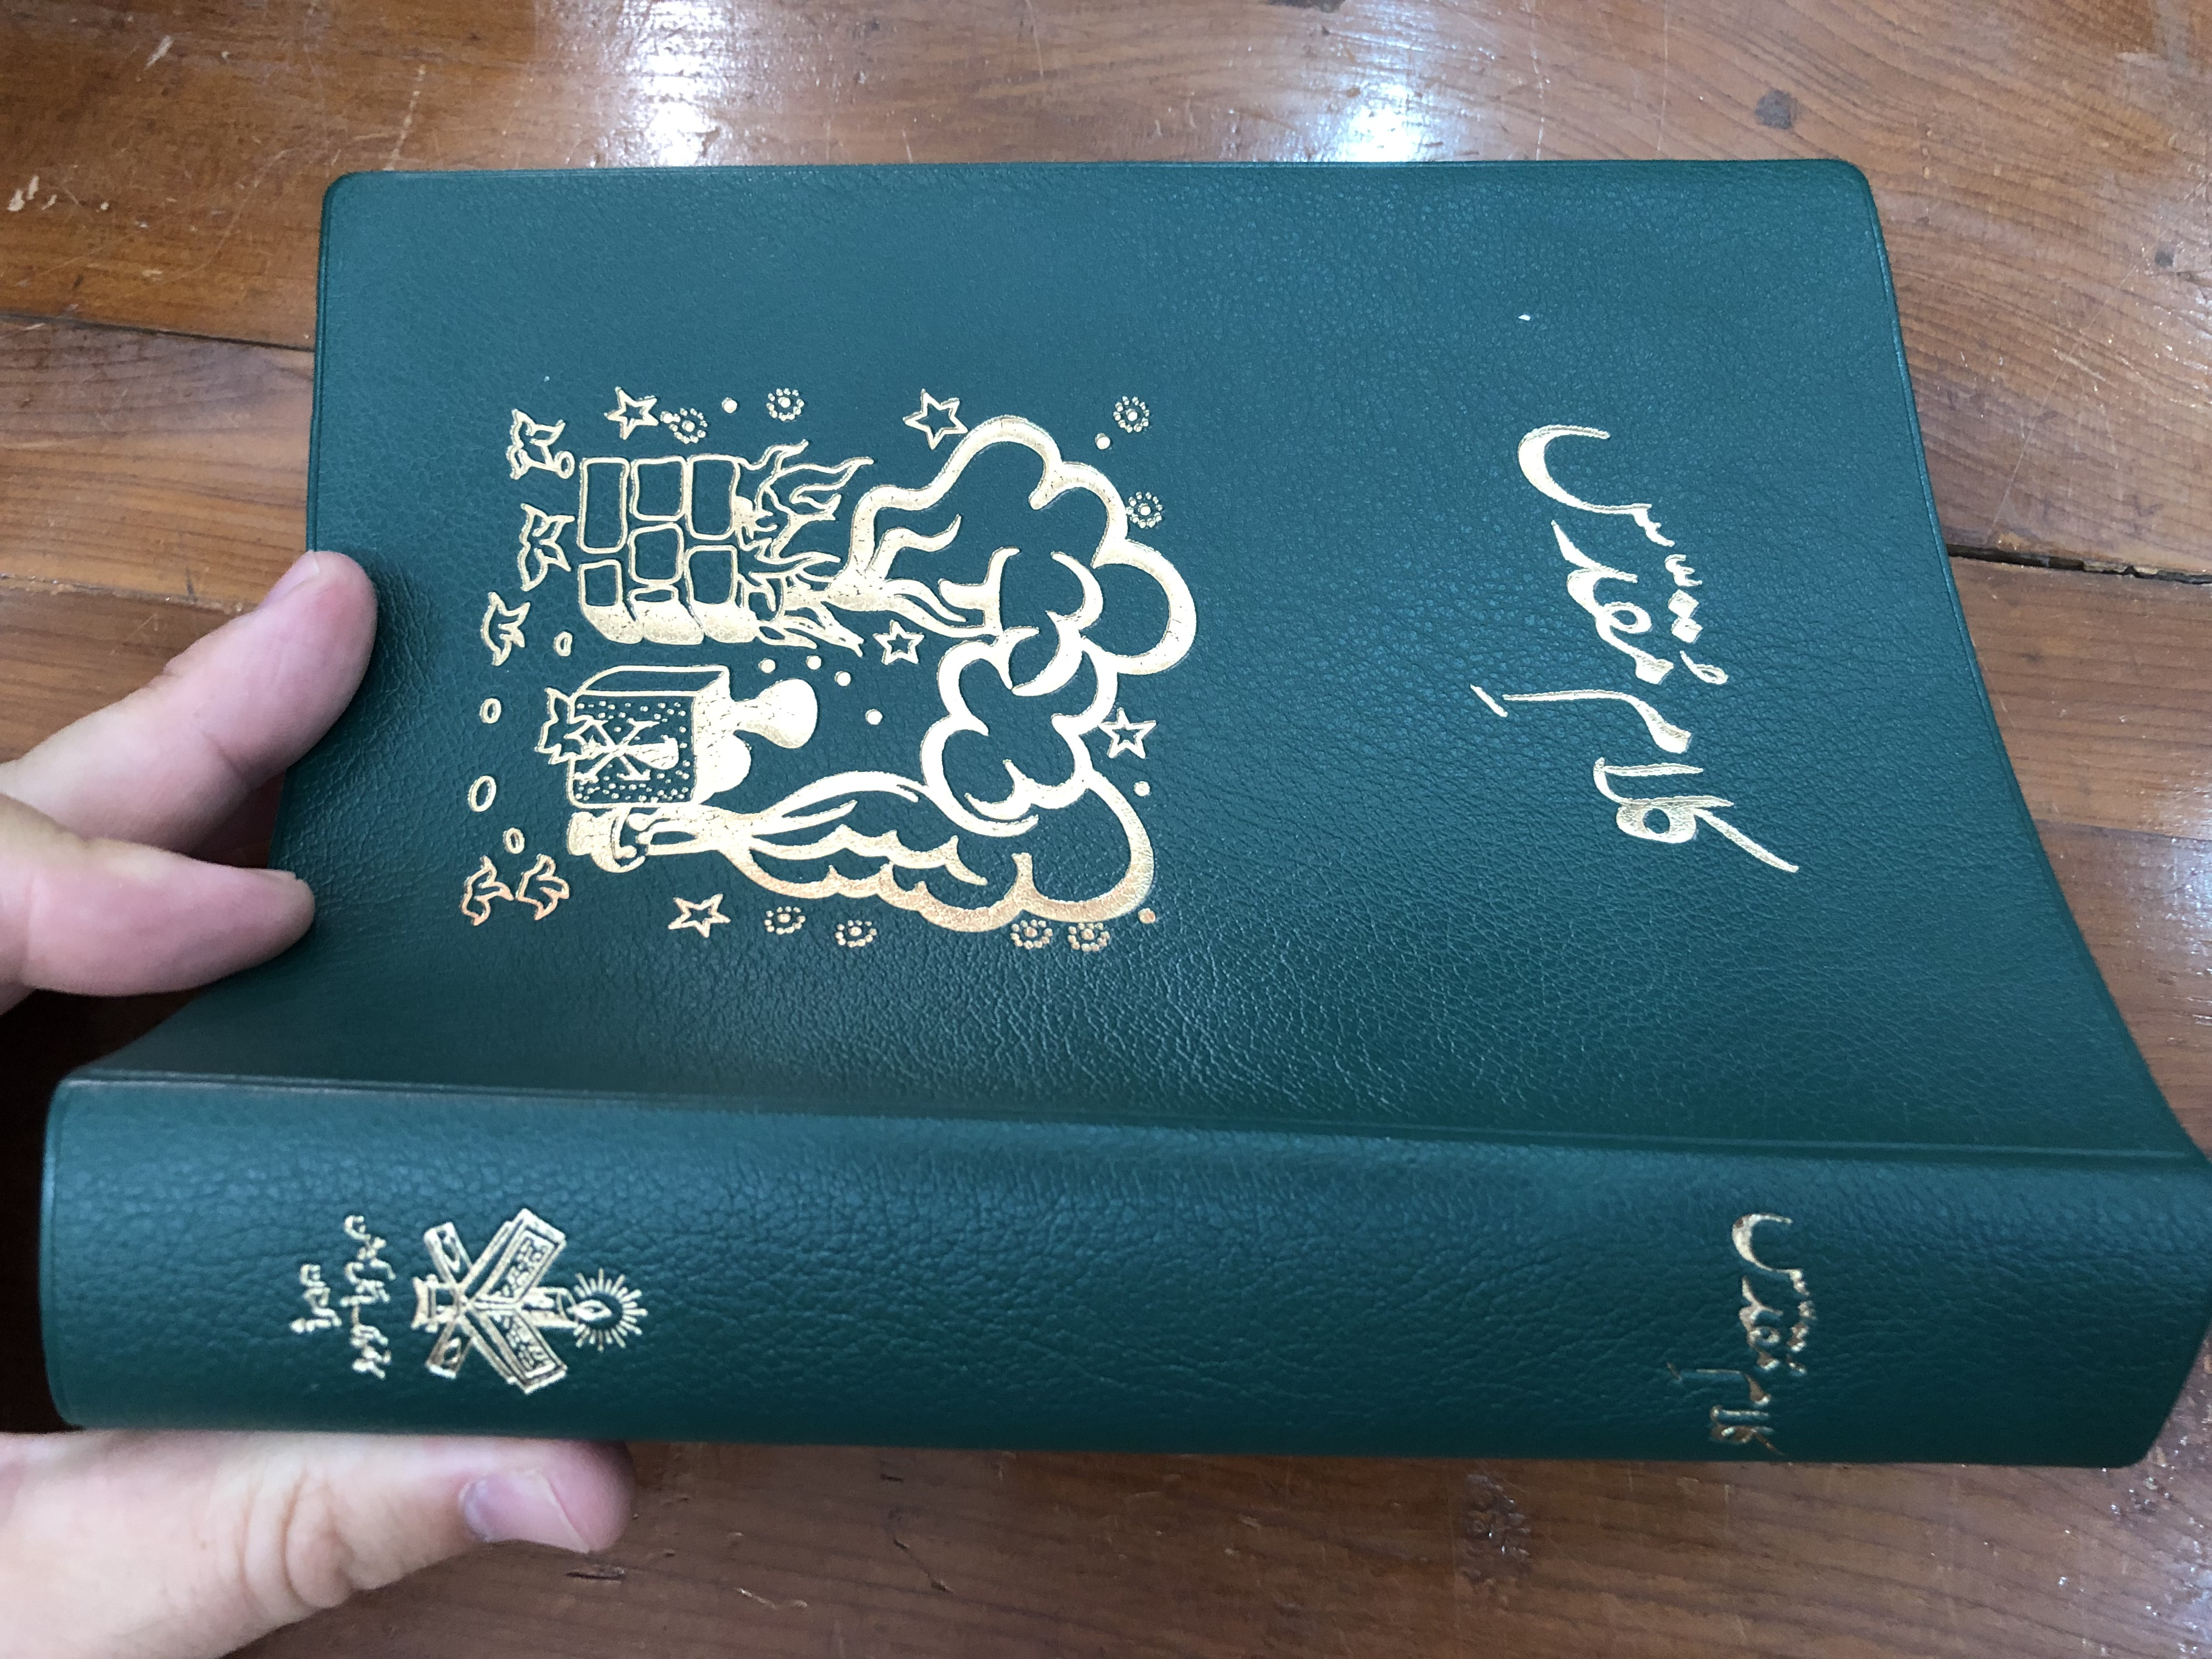 urdu-catholic-bible-green-vinyl-bound-catholic-bible-commission-pakistan-2007-kalam-e-muqaddas-with-color-maps-14-.jpg